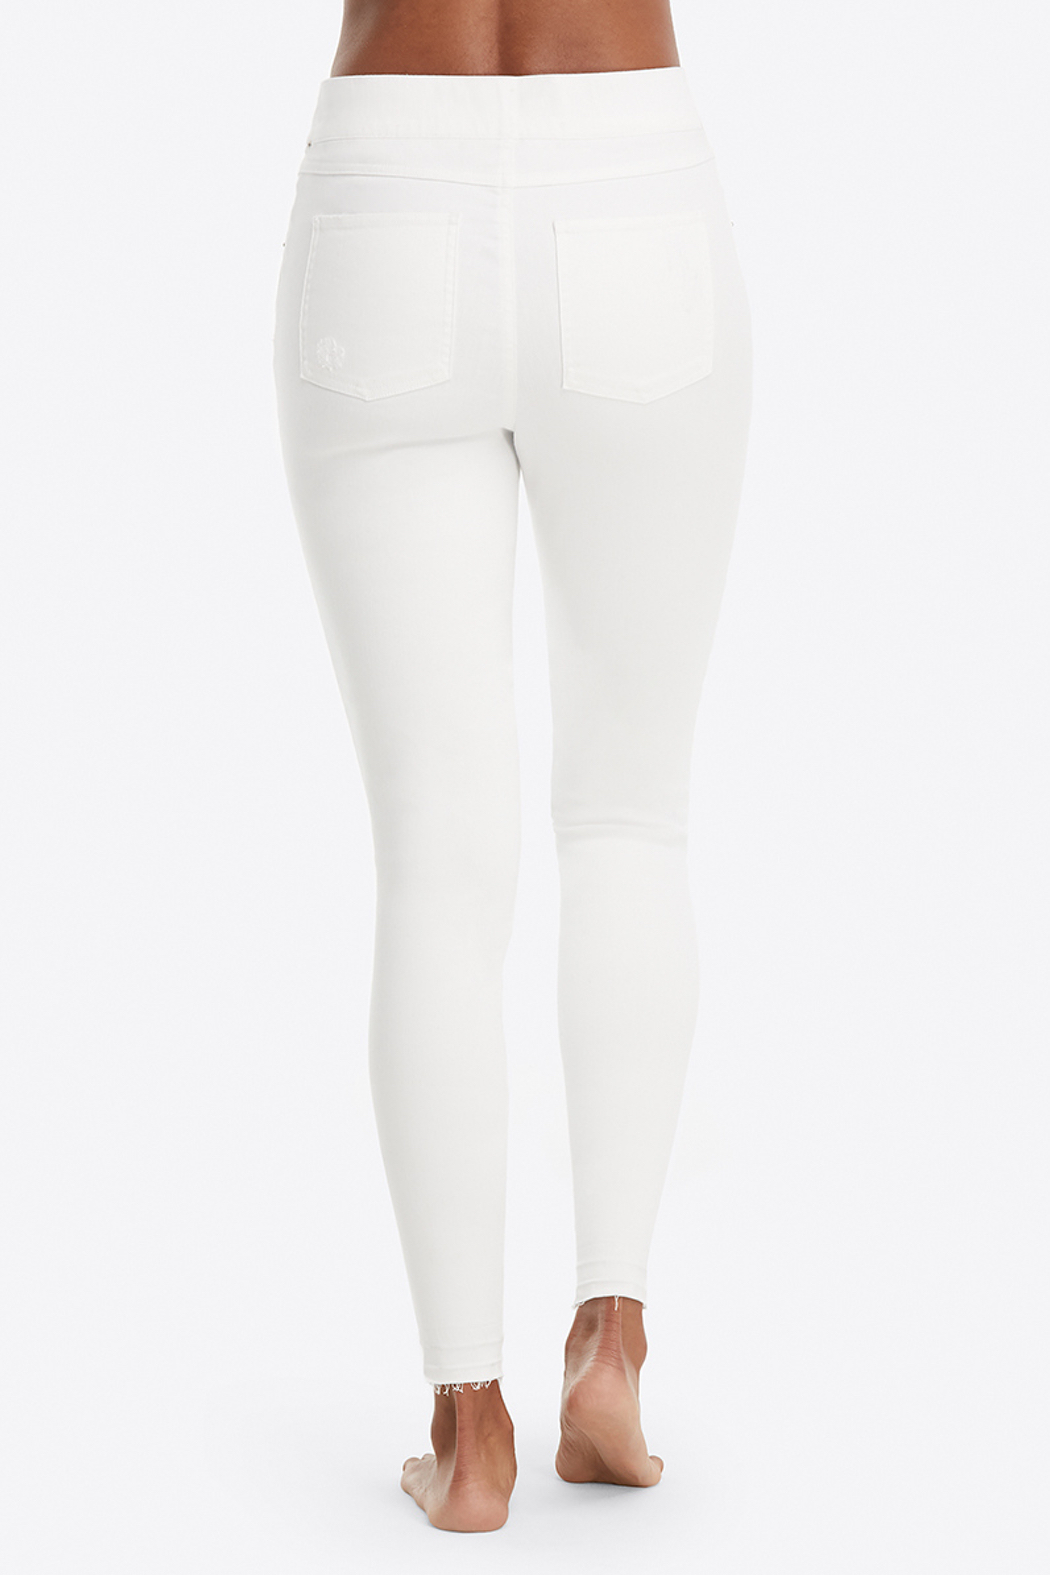 Spanx Distressed Denim Leggings - Back Cropped Image